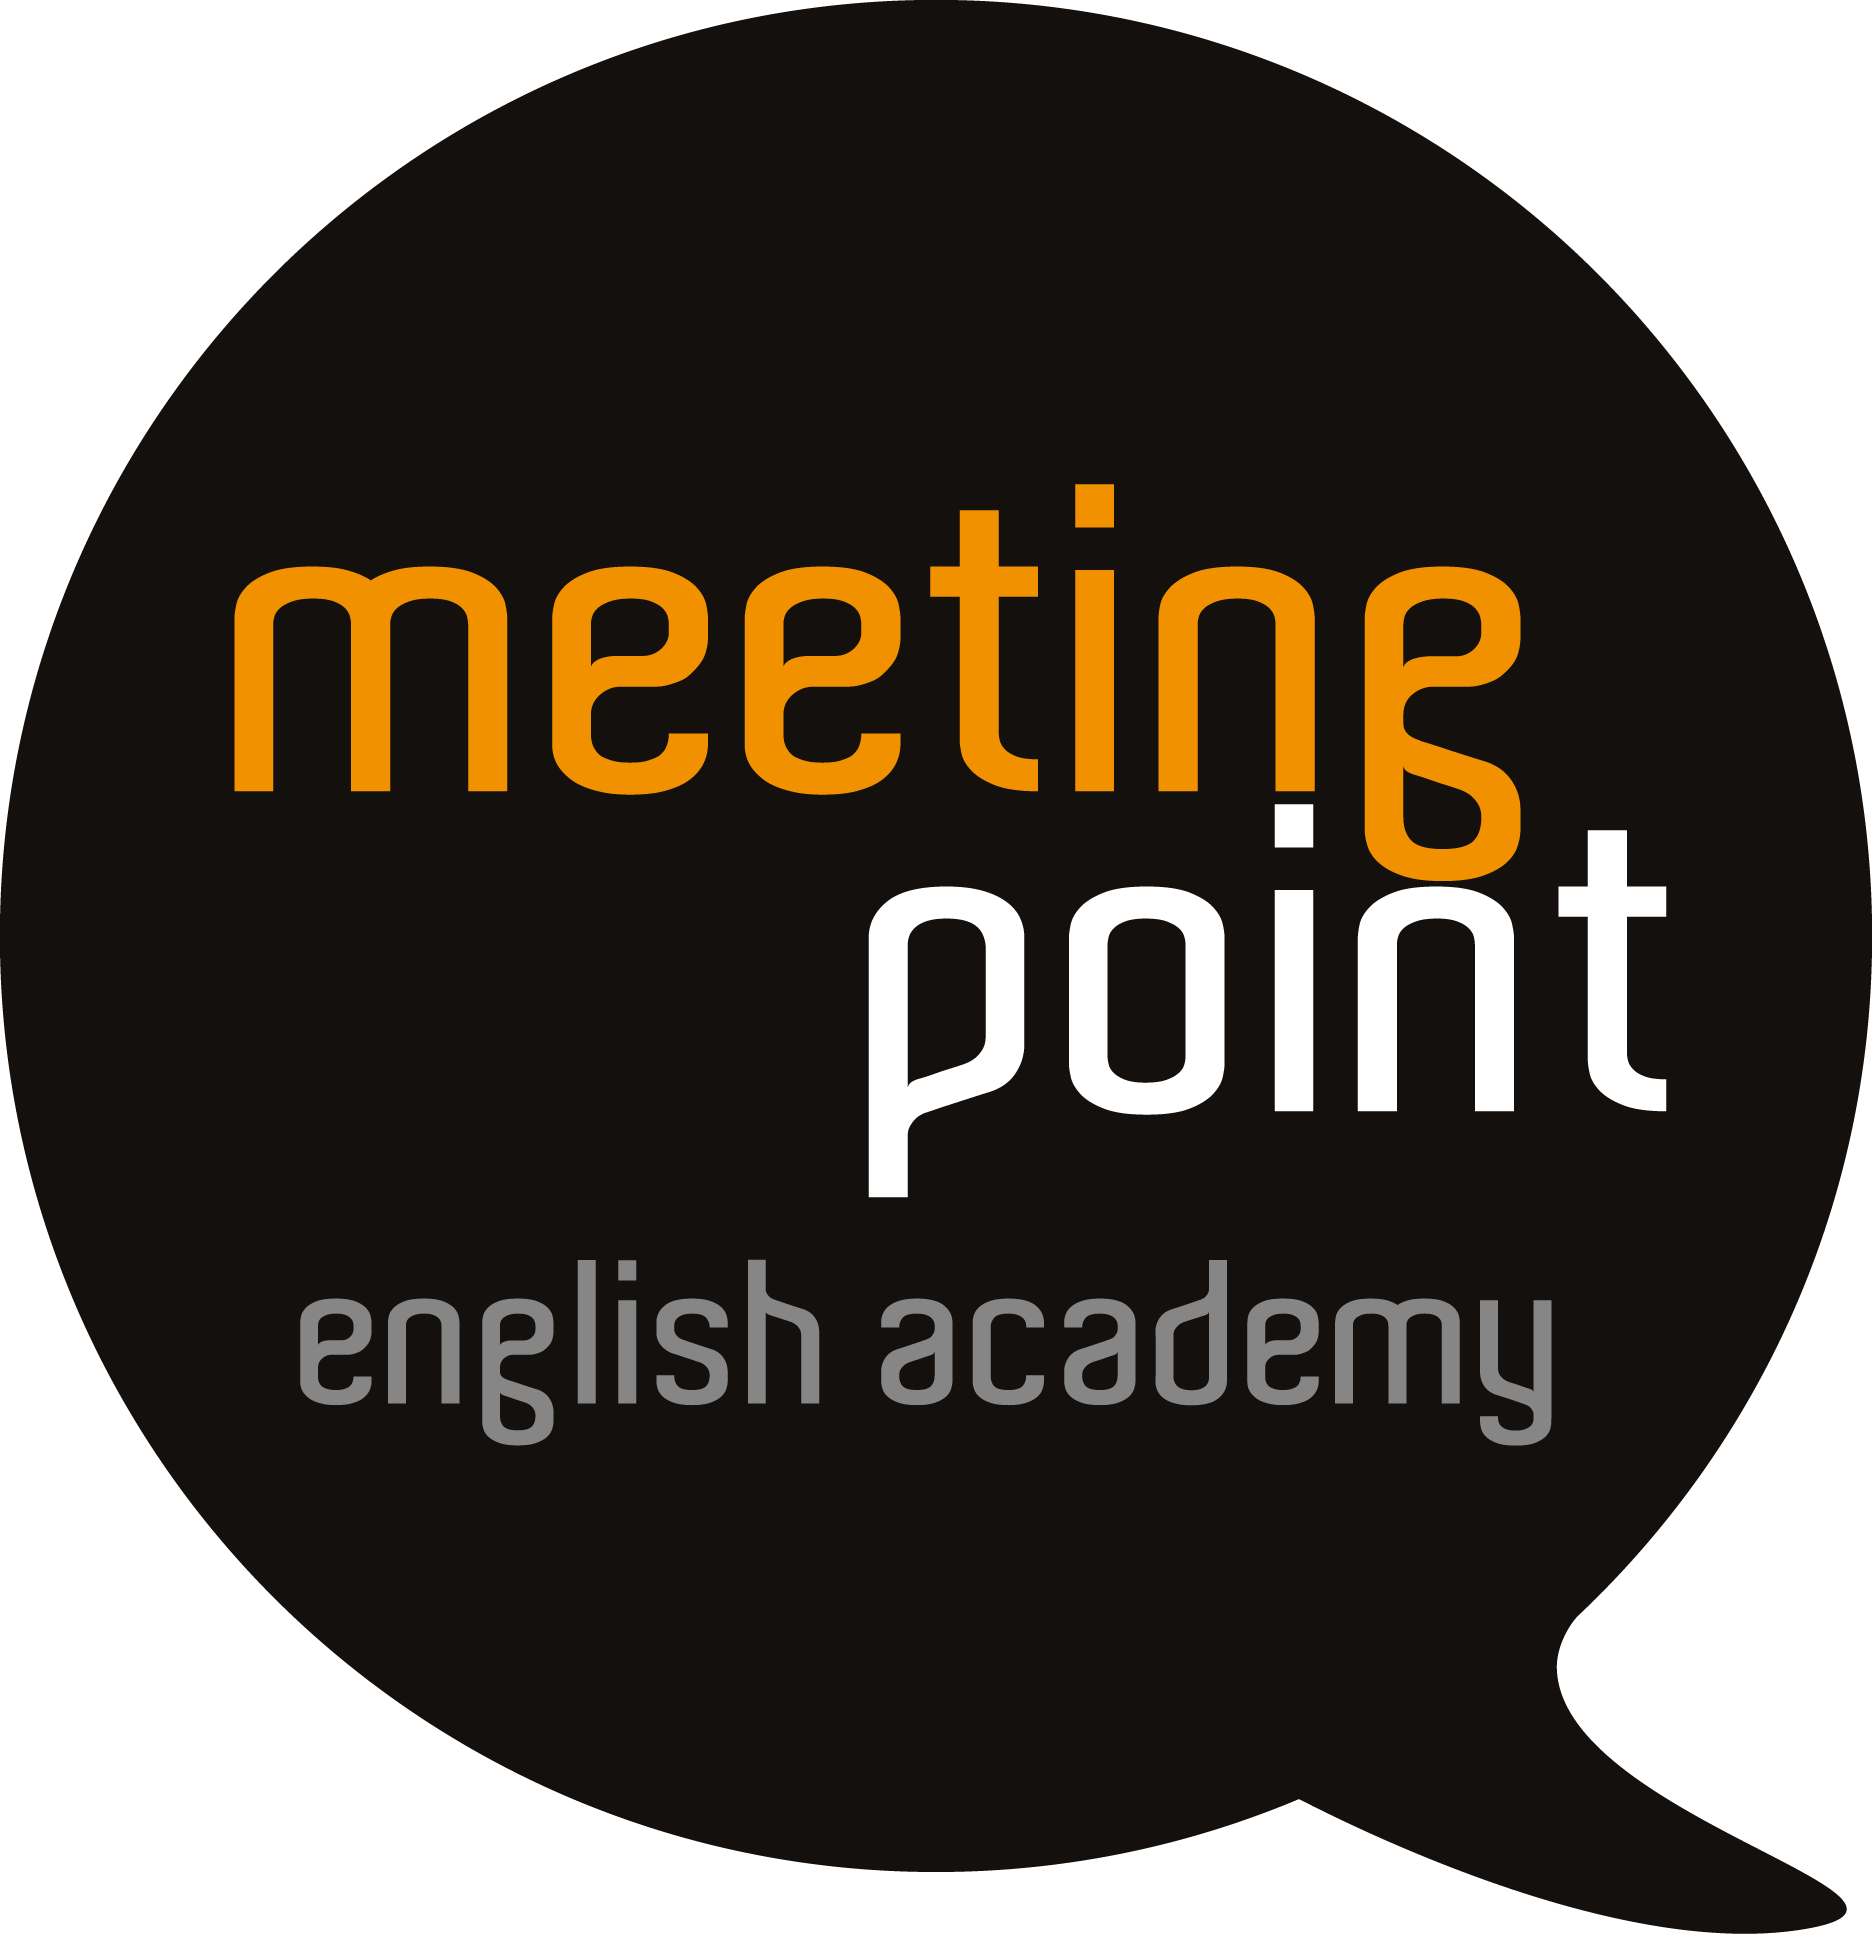 Meeting Point Academy